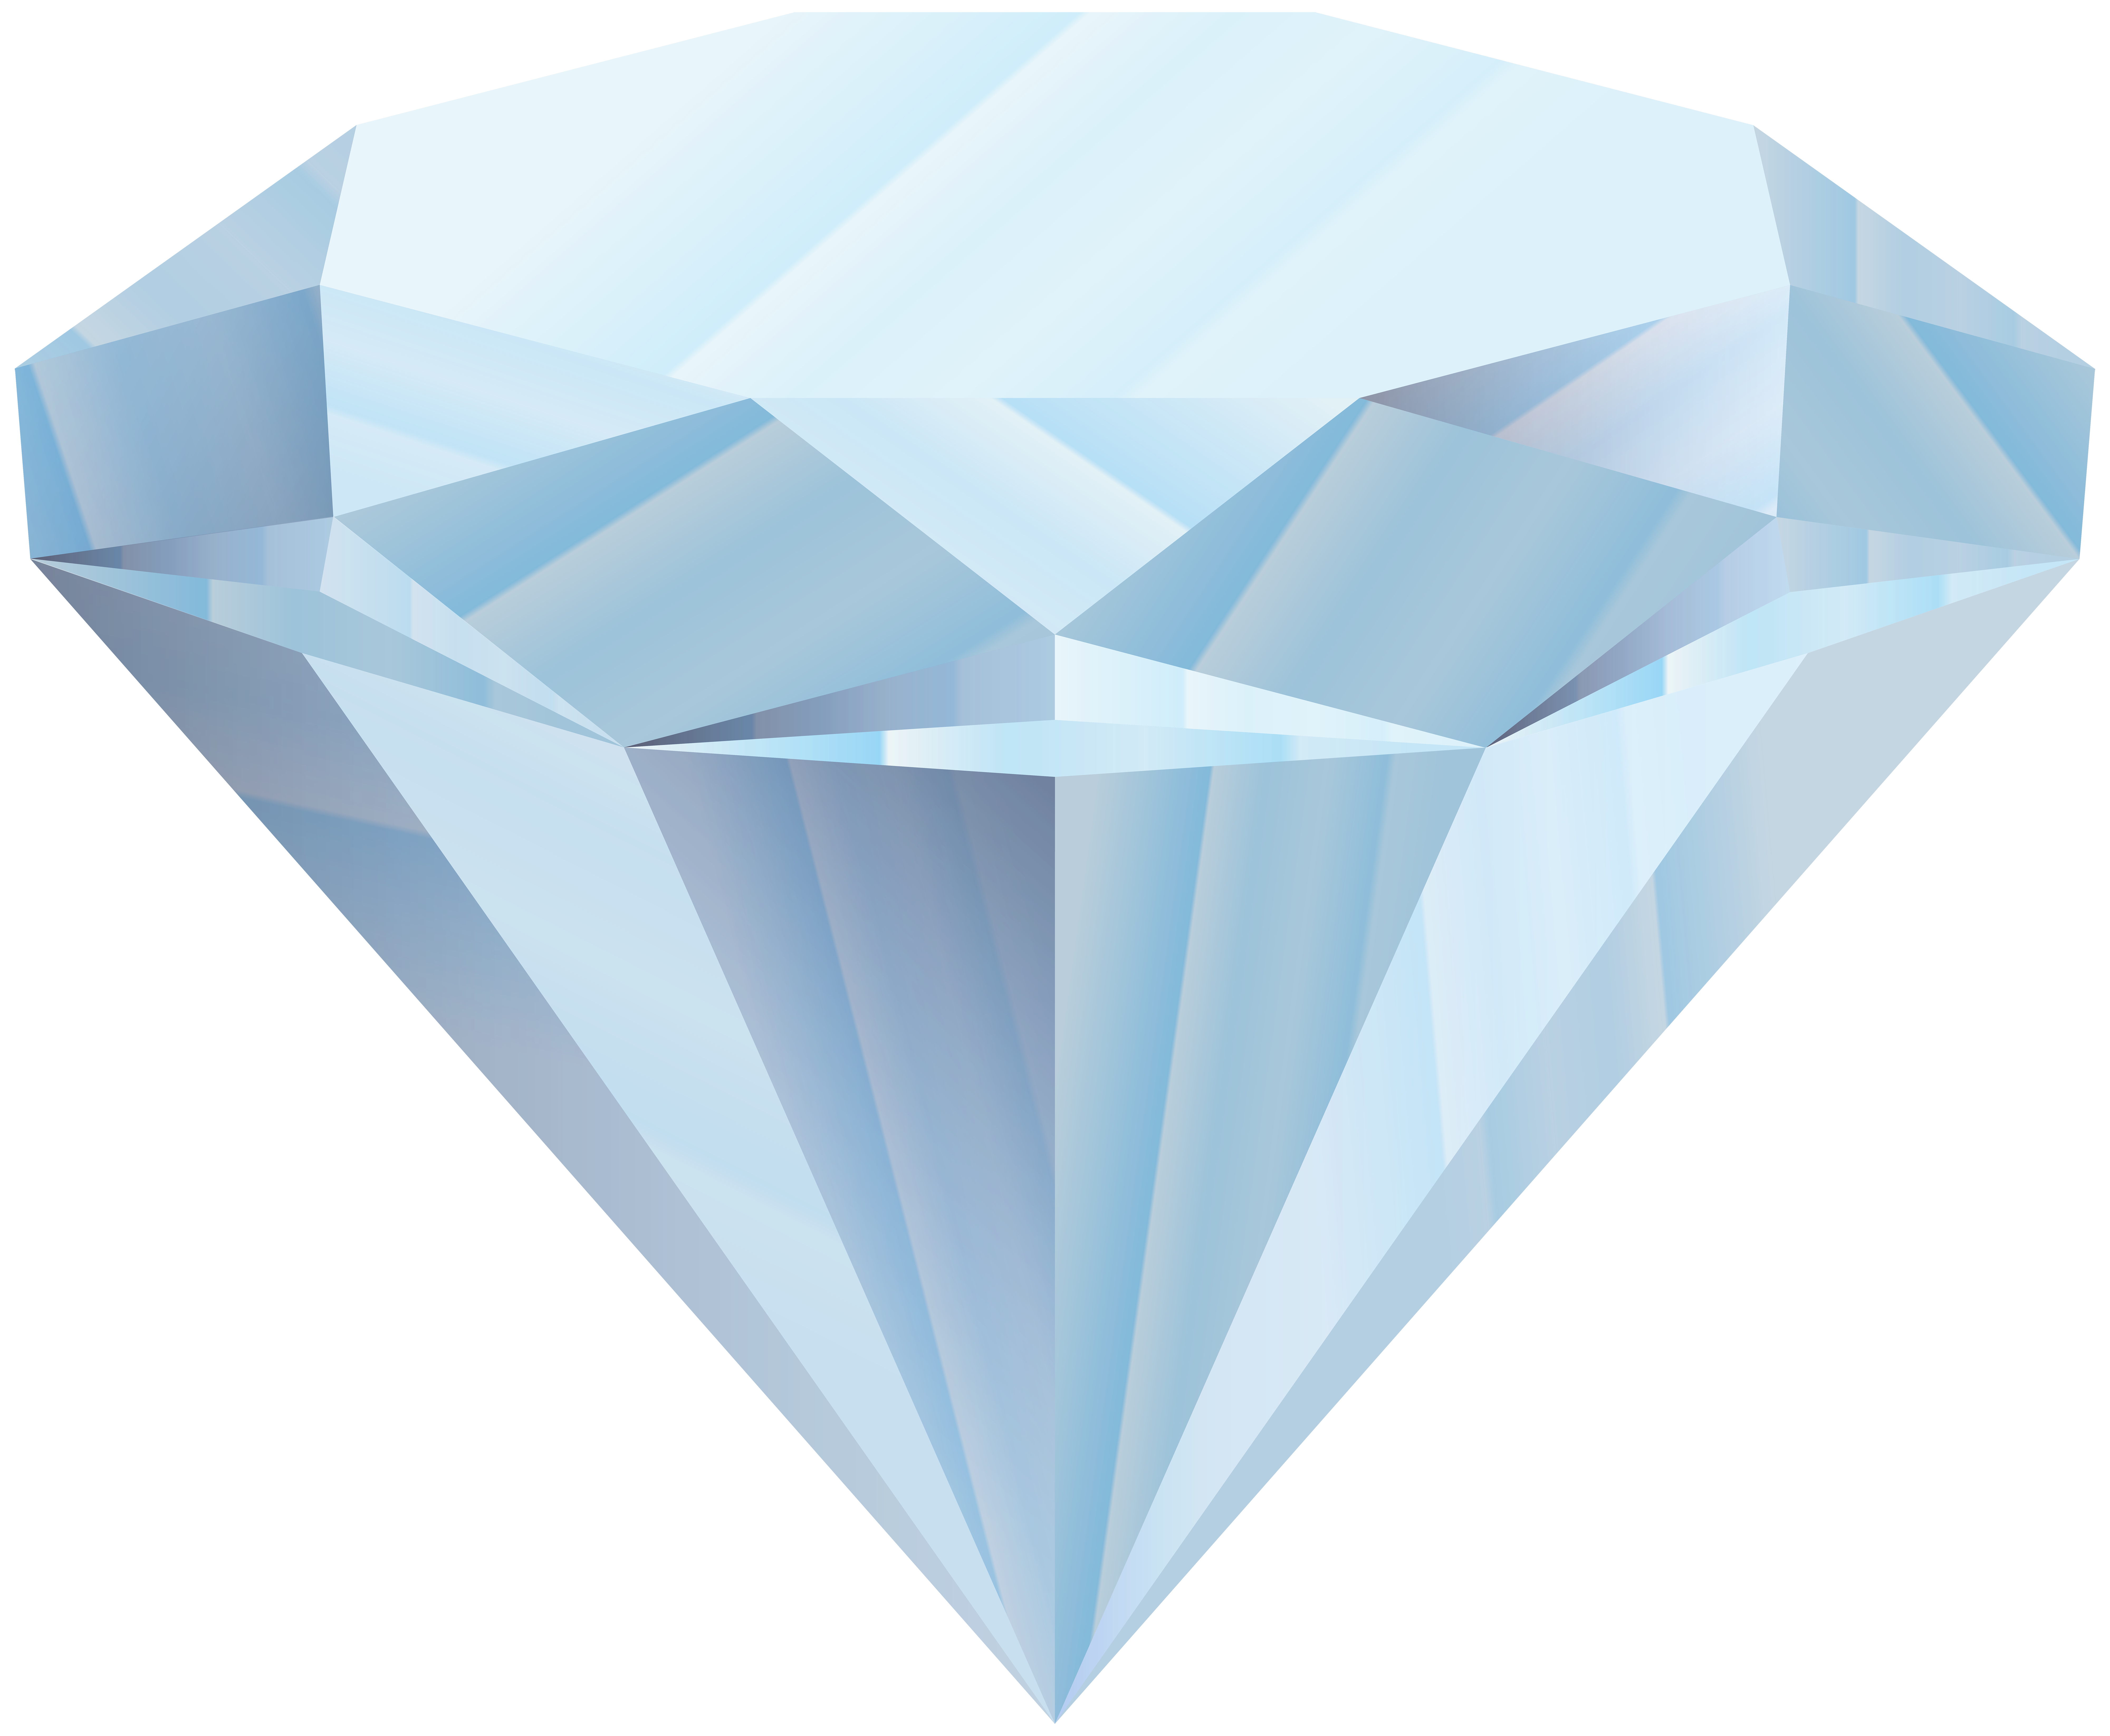 Png clip art image. Diamond clipart teal